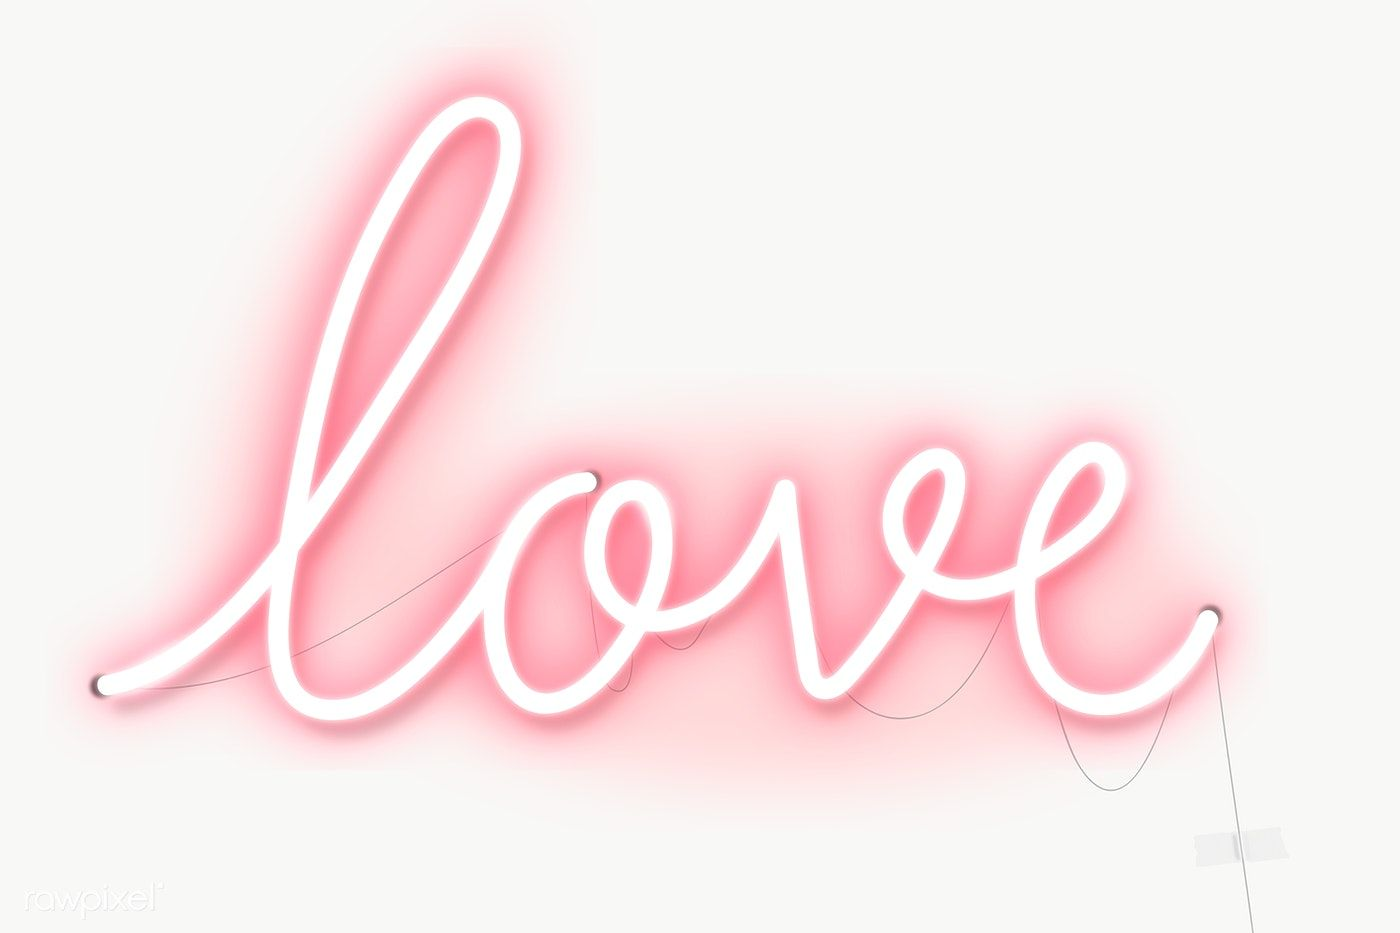 Neon Love Sign Design Resource Transparent Png Free Image By Rawpixel Com Marinemynt Neon Typography Neon Sign Design